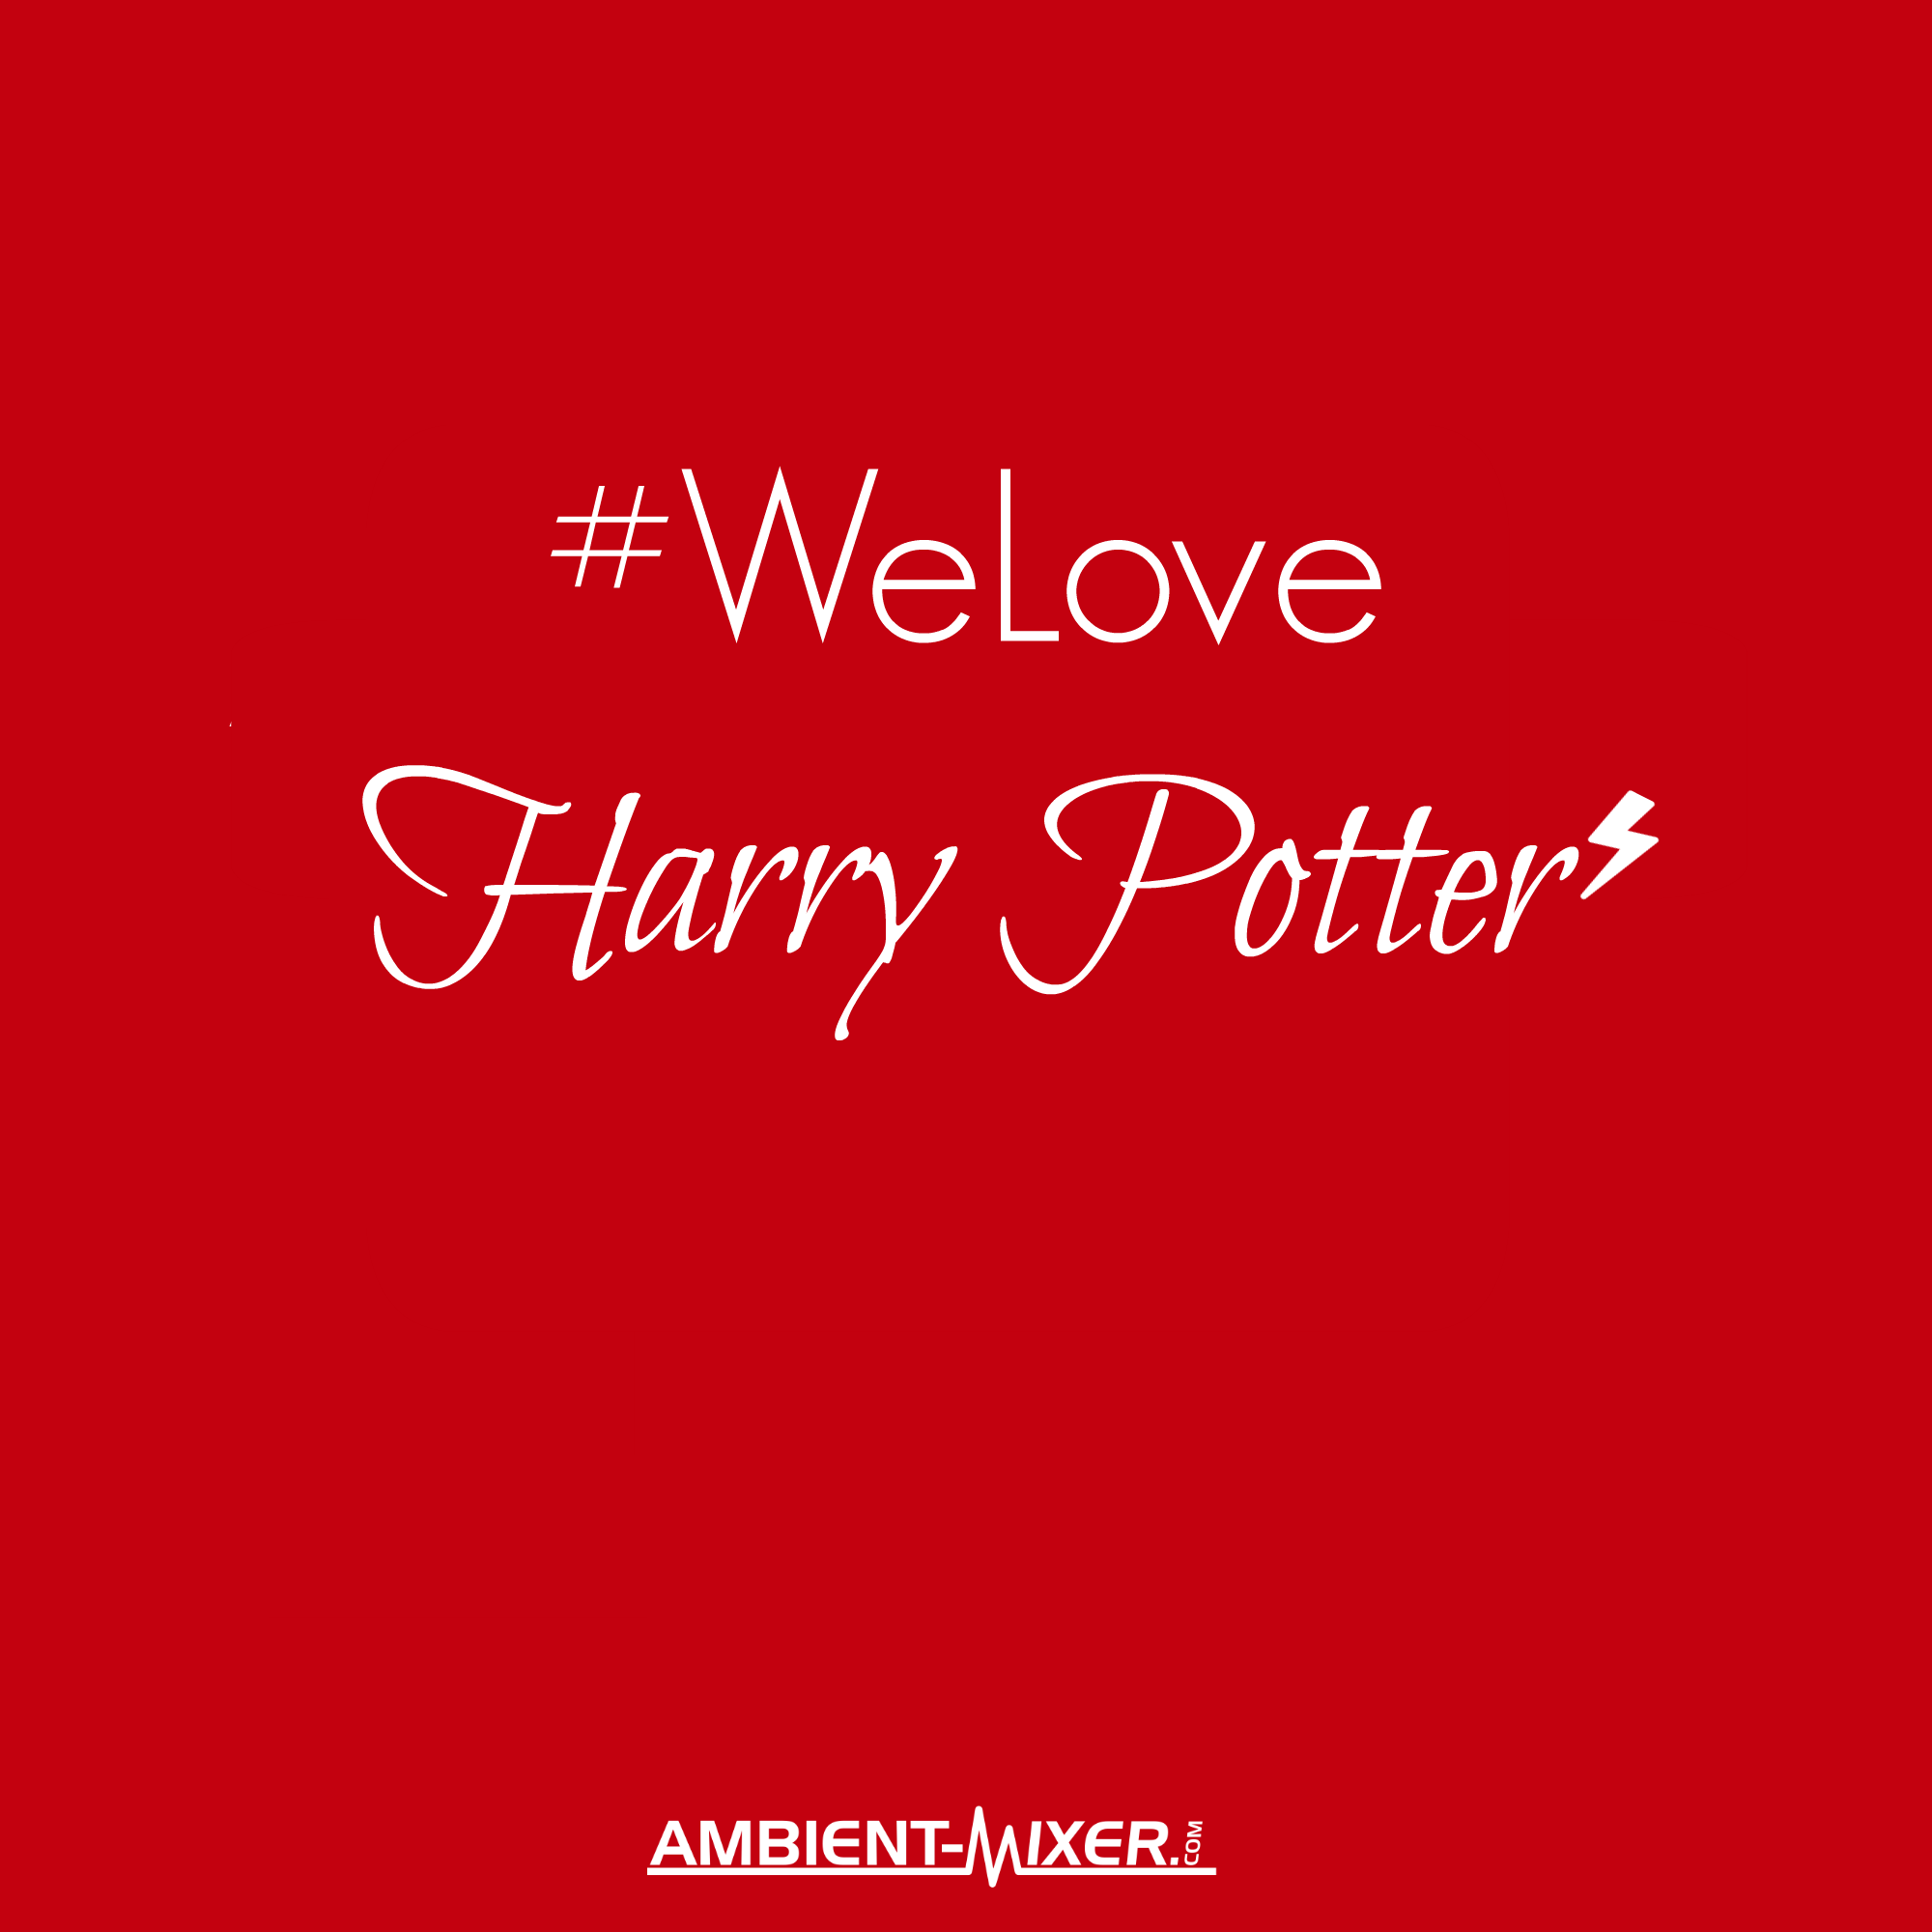 Ambient Mixer welove – harry potter ⚡ listen to all sorts of #harrypotter